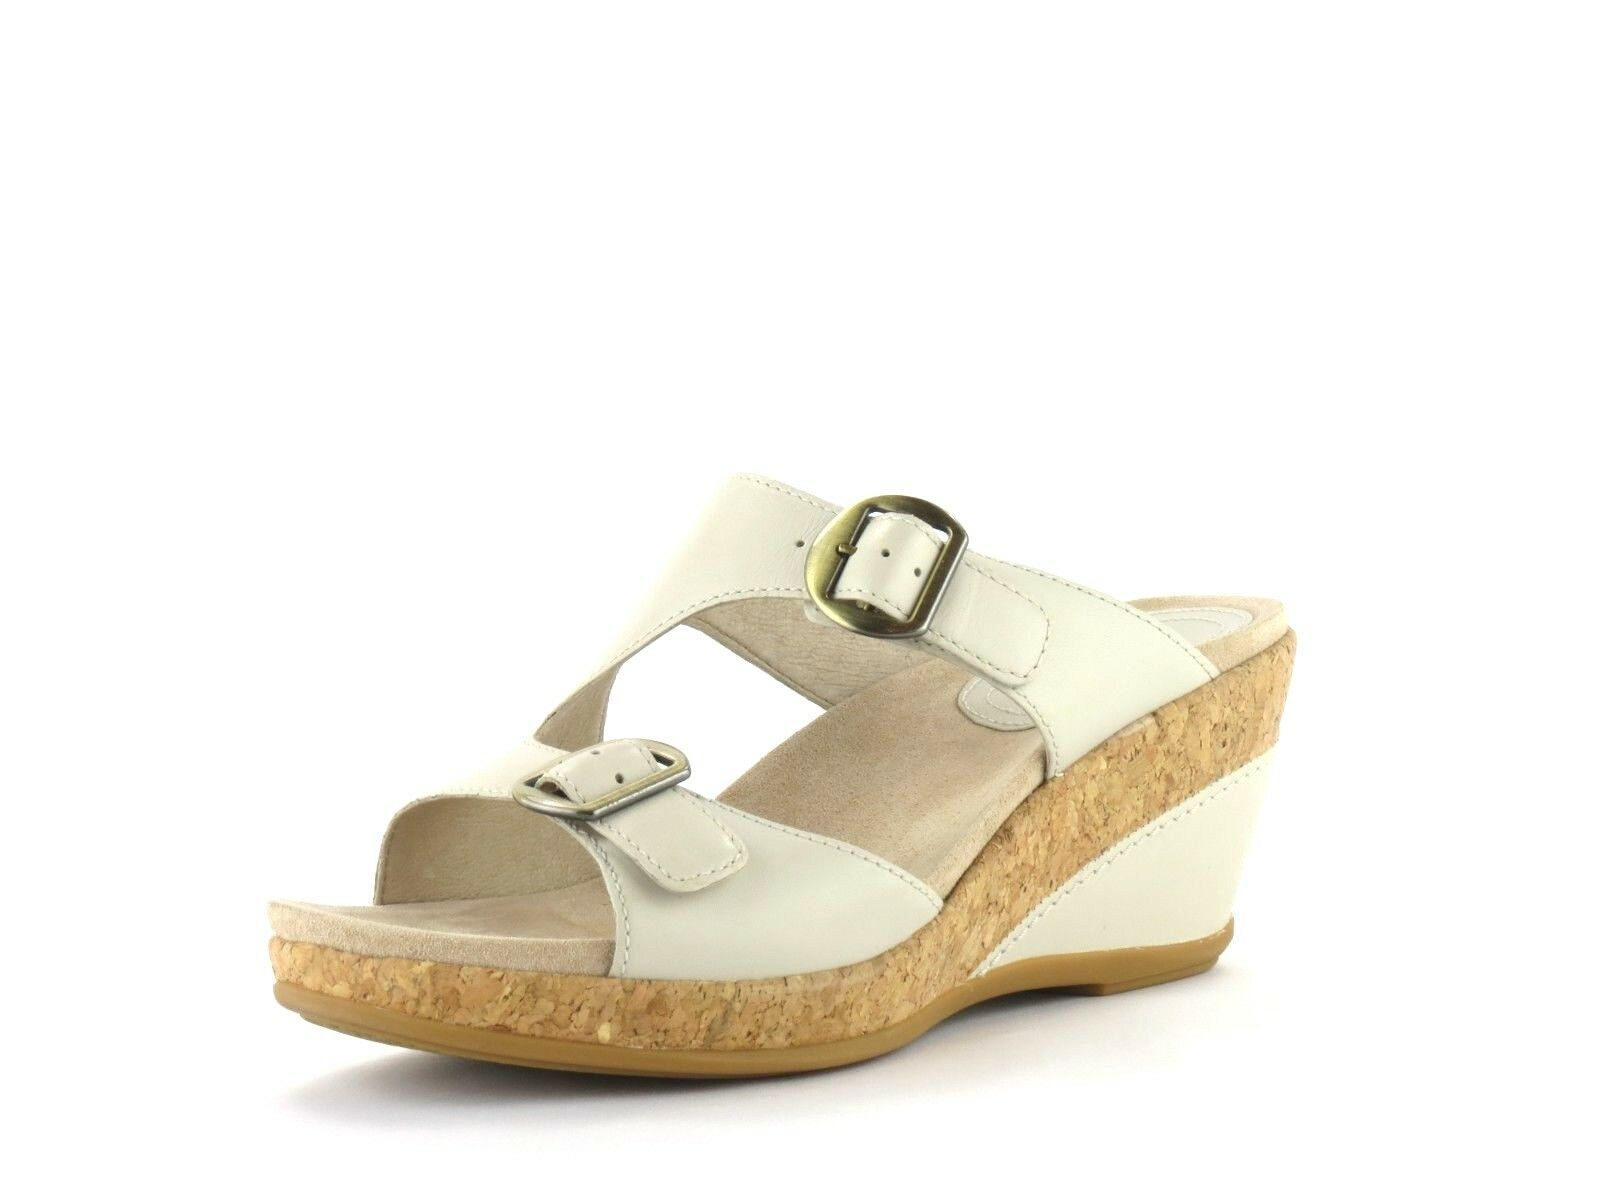 Dansko Carla Ivory Full Full Full Grain Leather Double Strap Cork Wedge Platform Sandal 41 233e89